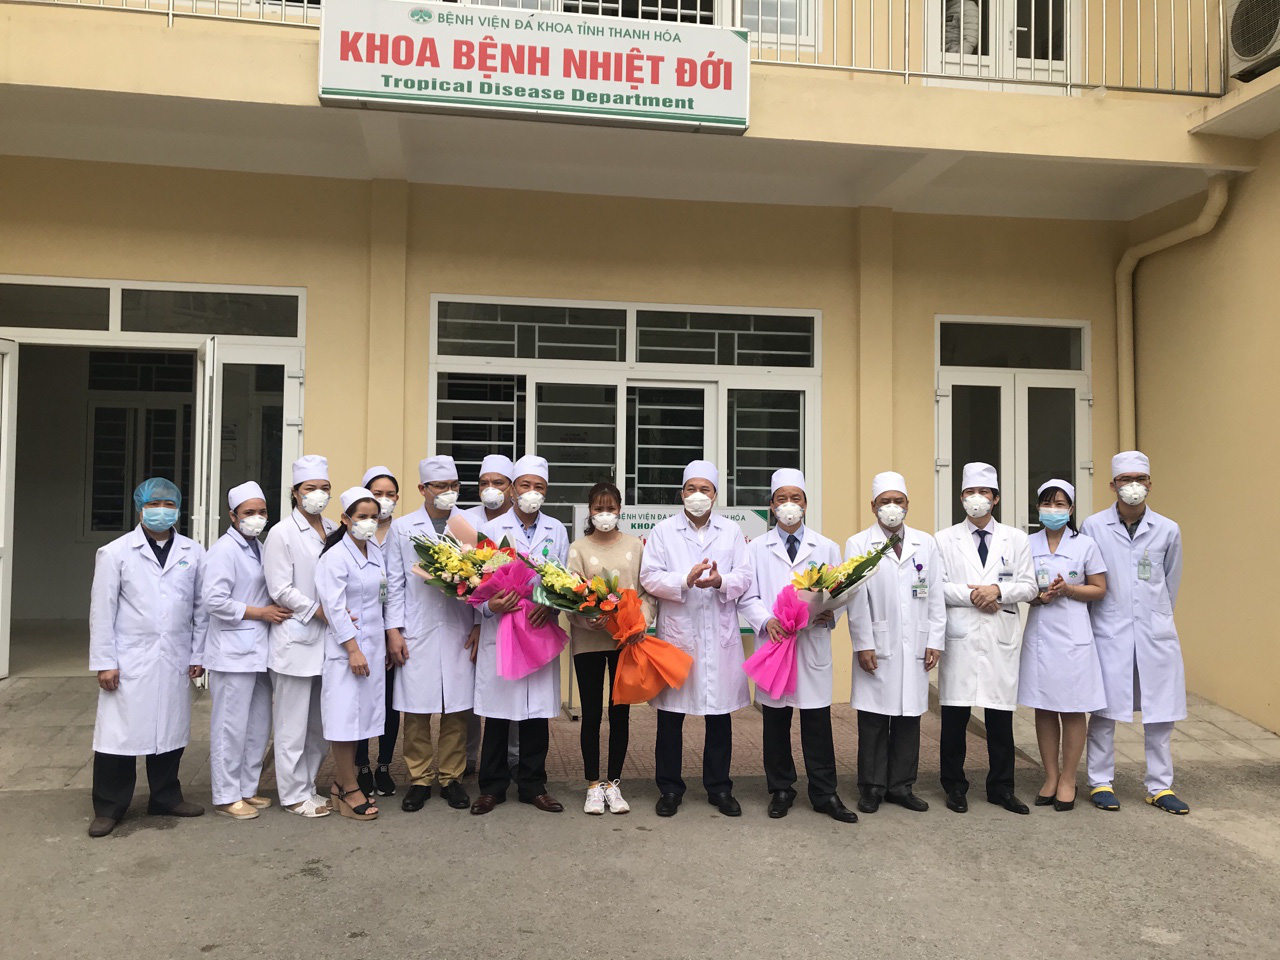 Woman becomes second patient cured of new coronavirus-caused pneumonia in Vietnam